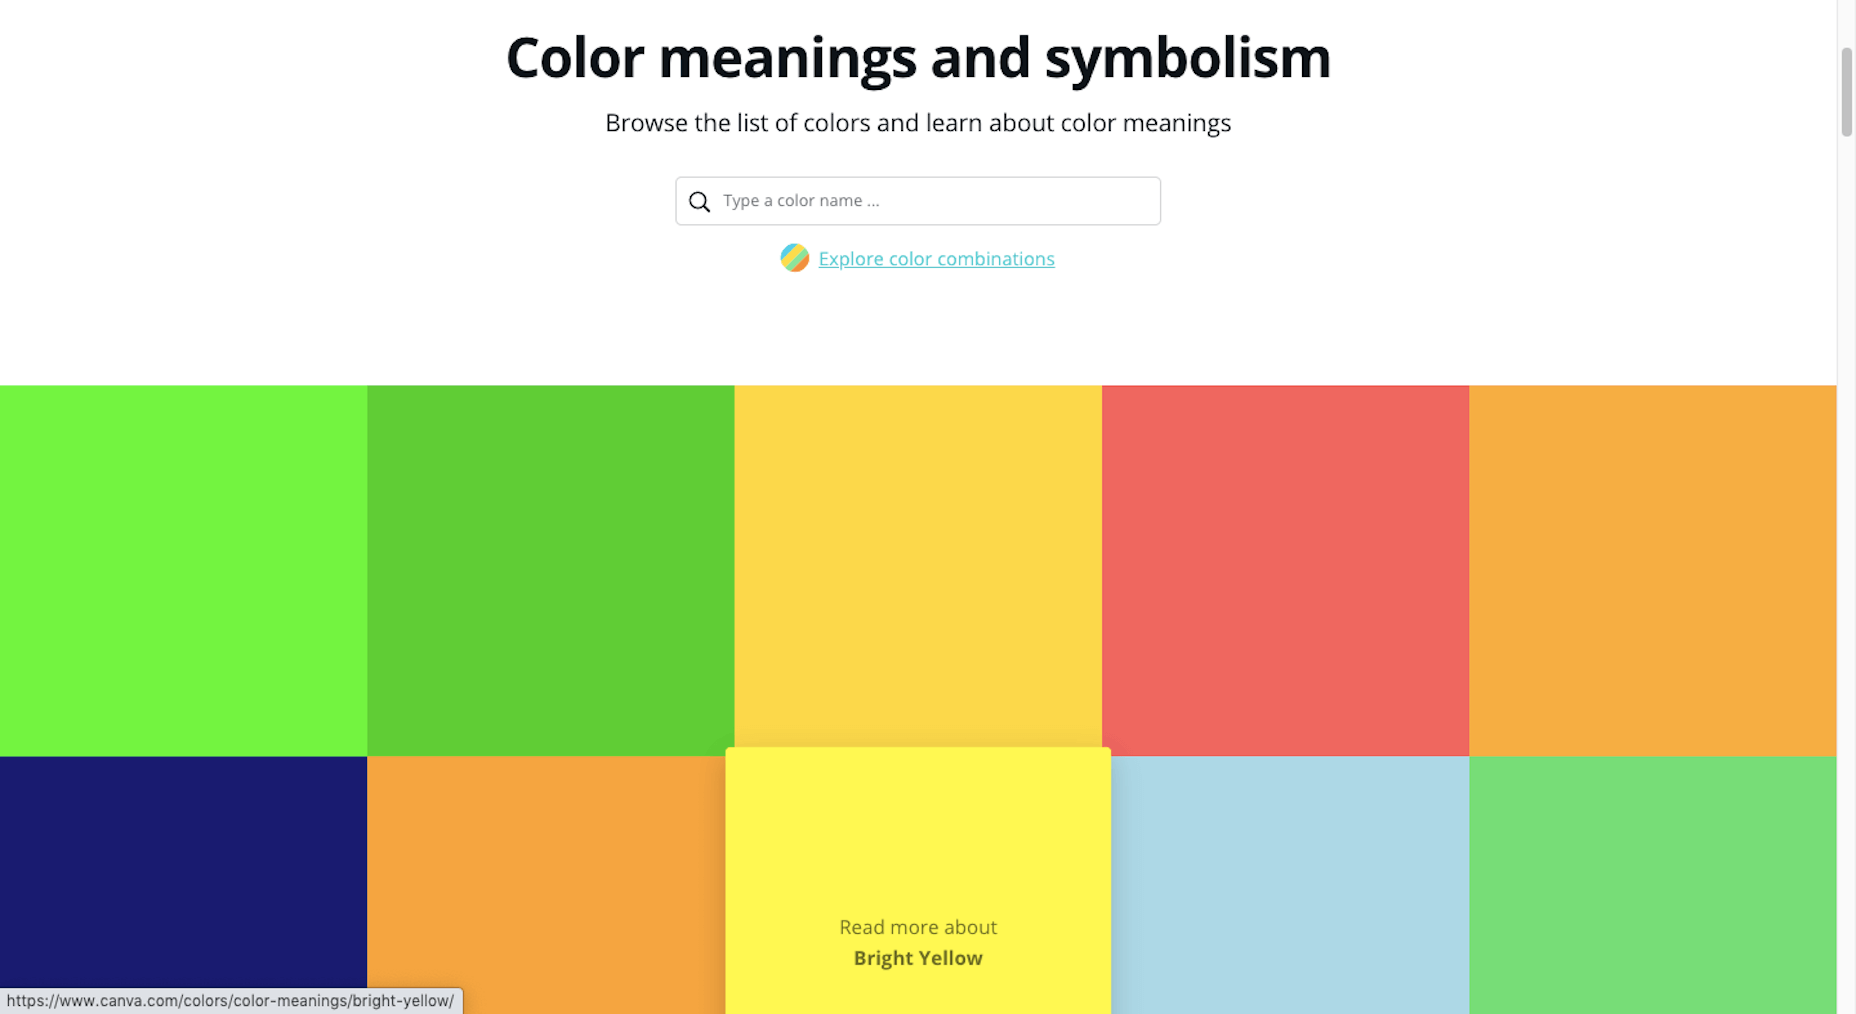 Image of canva color meaning